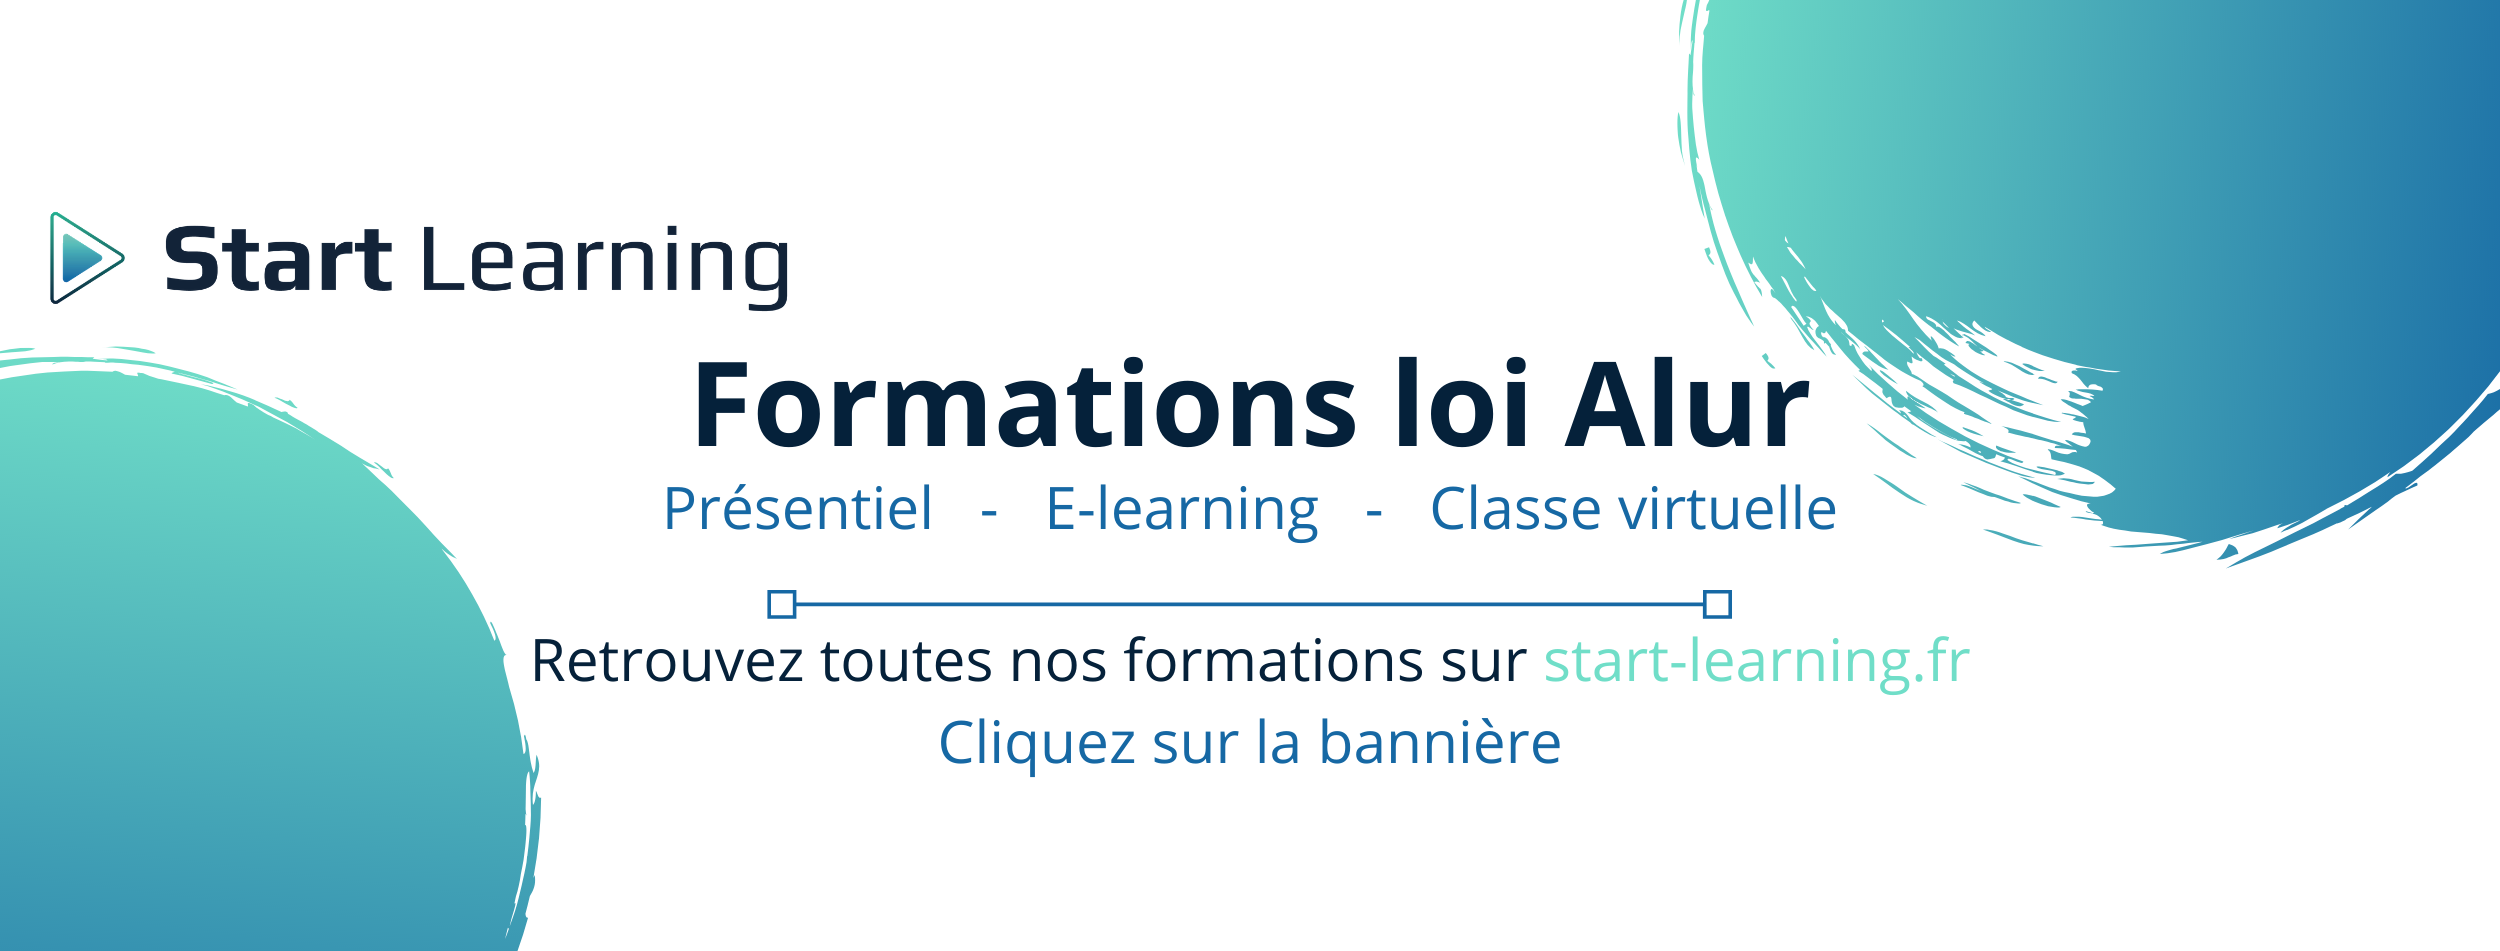 Formations loi Alur - Start Learning